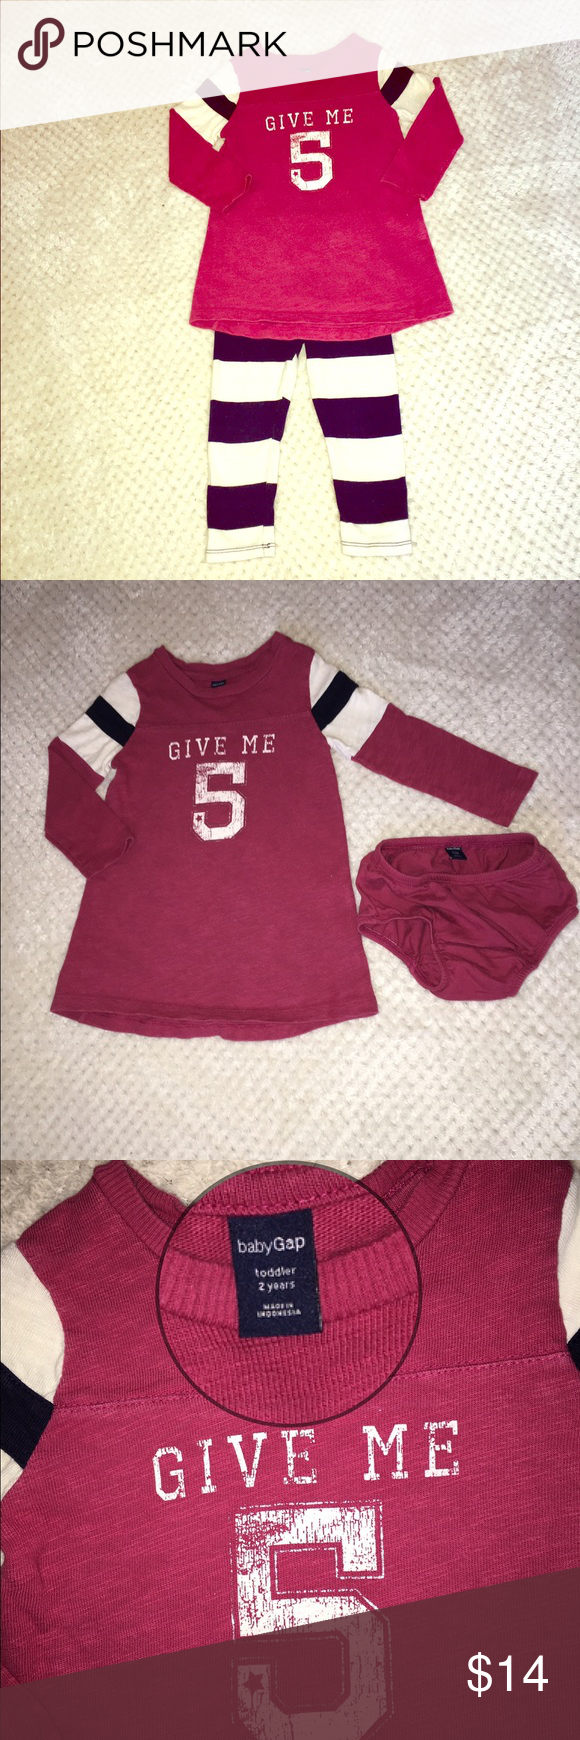 GAP Kids girls tunic top 2T Give me five! Hi-five your little princess in this adorable tunic-style long sleeve top by GAP Kids! 100% cotton so it's super soft. Comes with matching diaper cover/underwear cover. Muted red with white and navy stripes on sleeves. Can be worn alone or paired with leggings. GAP Shirts & Tops Tees - Long Sleeve